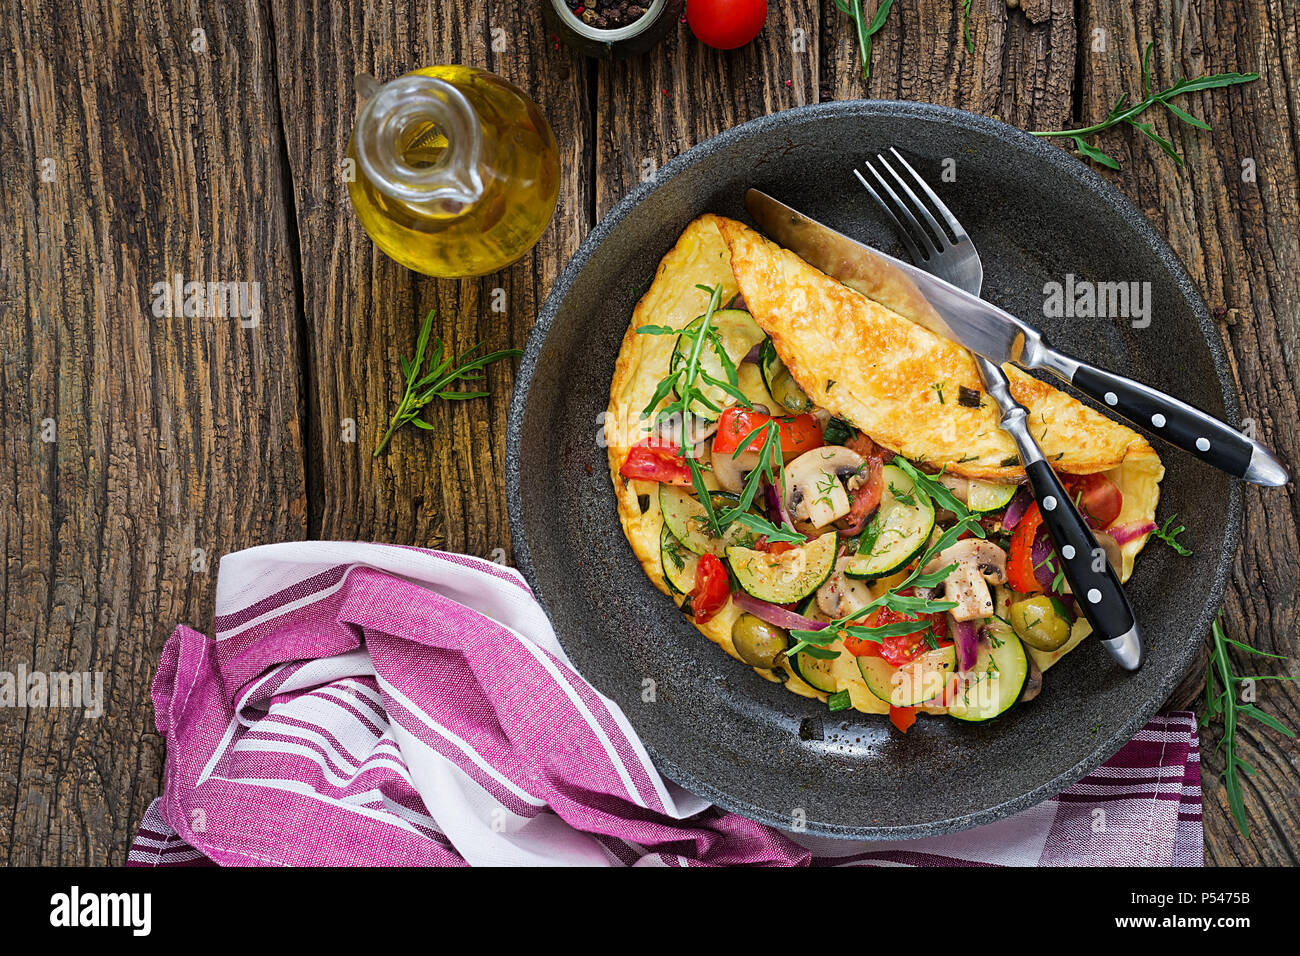 Omelet with tomatoes, zucchini and mushrooms. Omelette breakfast. Healthy food. Top view. Flat lay - Stock Image